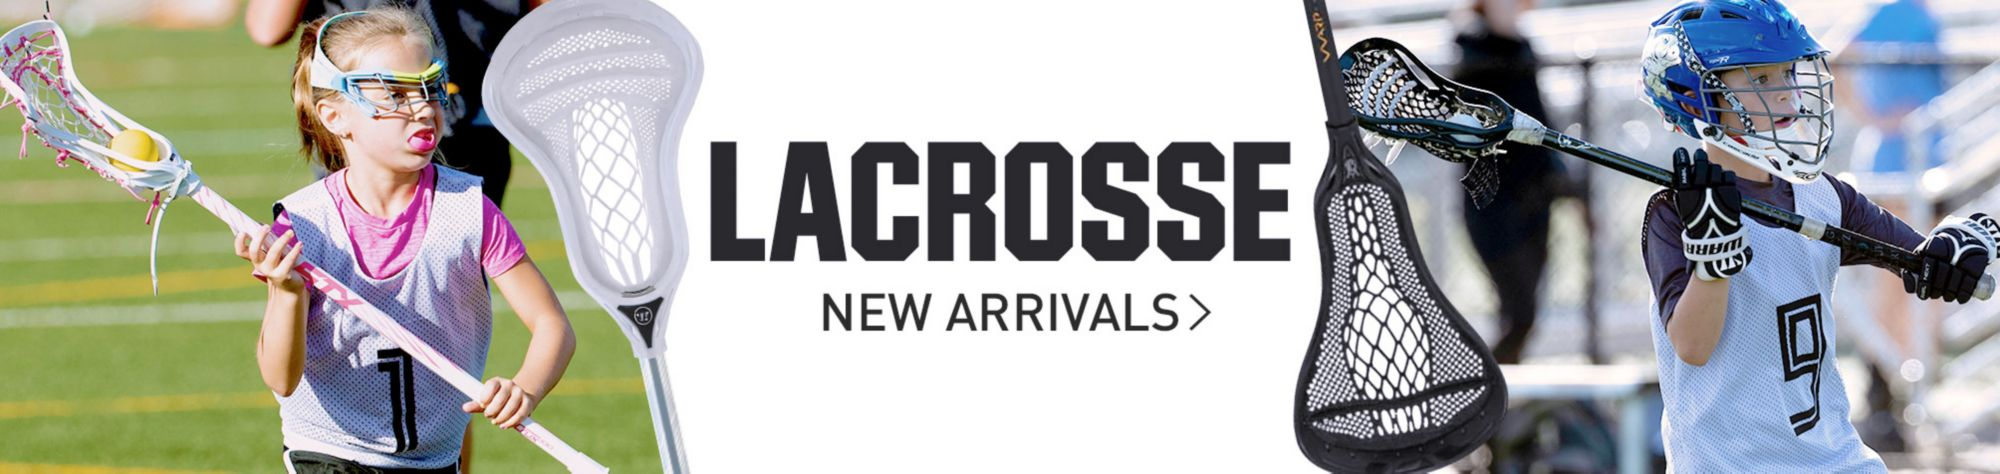 Lacrosse New Arrivals